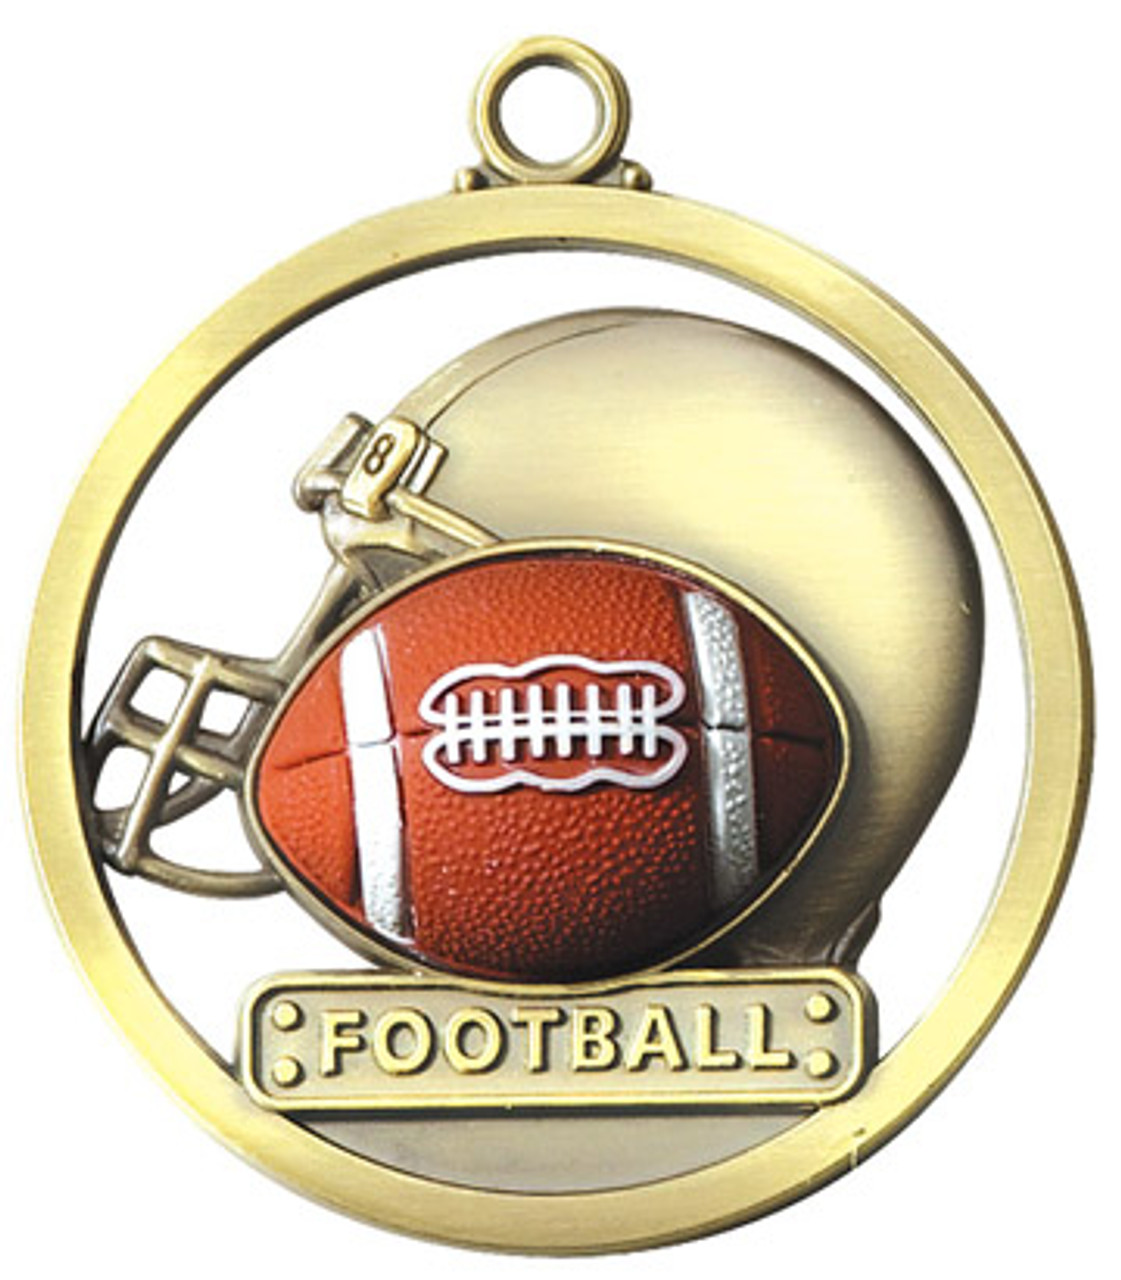 Game Ball Football Medal